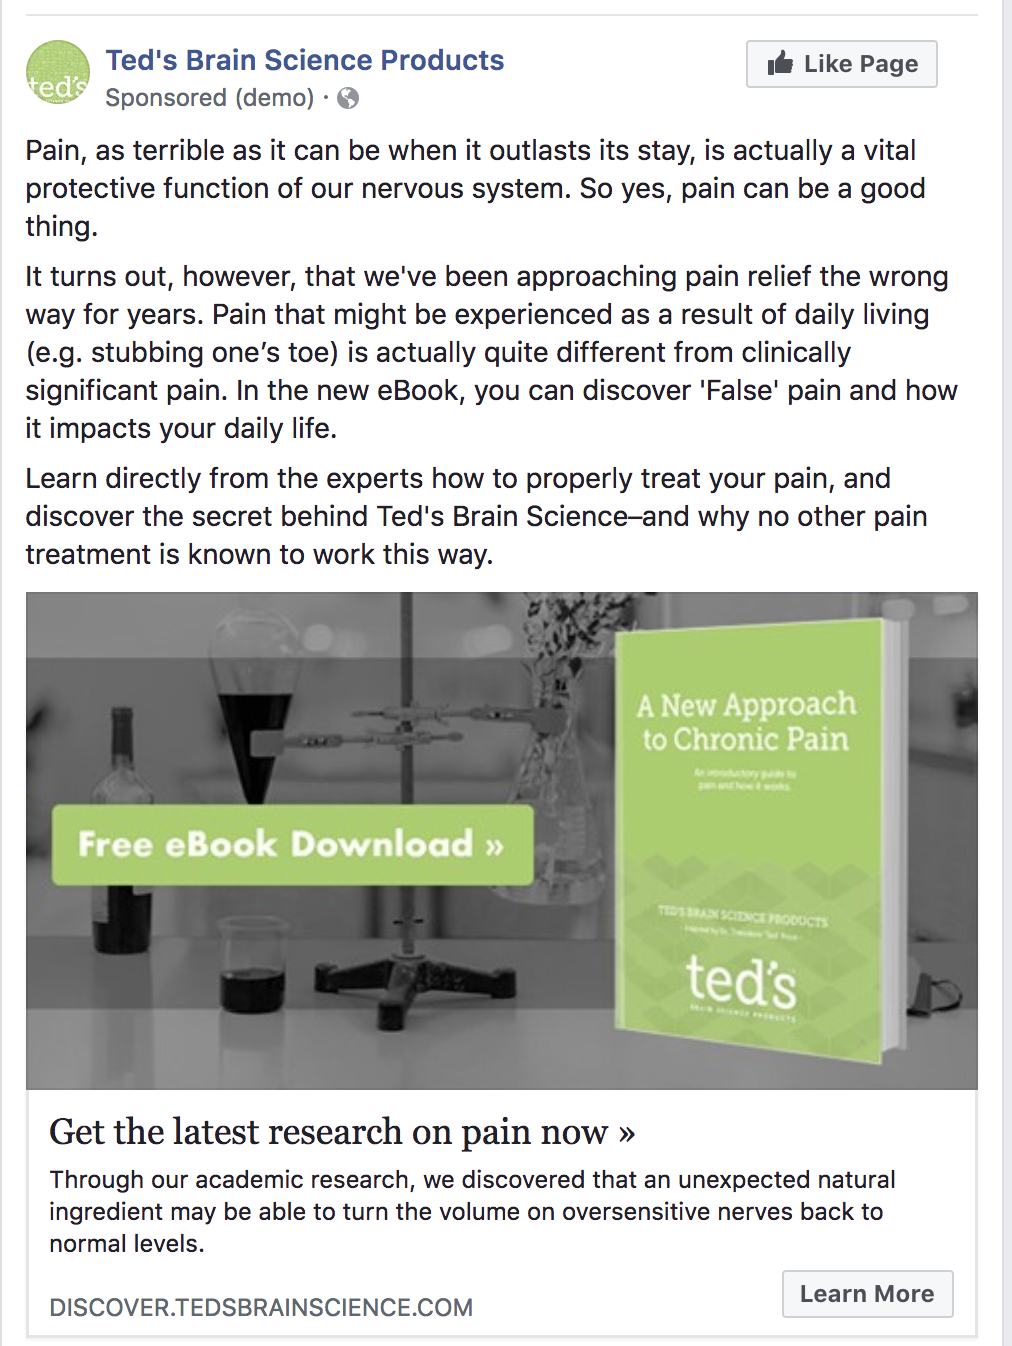 Treatment - This is the new treatment version of the eBook offer Facebook ad. You'll notice that everything except the supporting copy has stayed the same. In the supporting copy, we added a few paragraphs introducing the topic to the viewer. Here are the results observed for the treatment page:1172 visitors, 105 clicks (8.96% Clickthrough Rate)